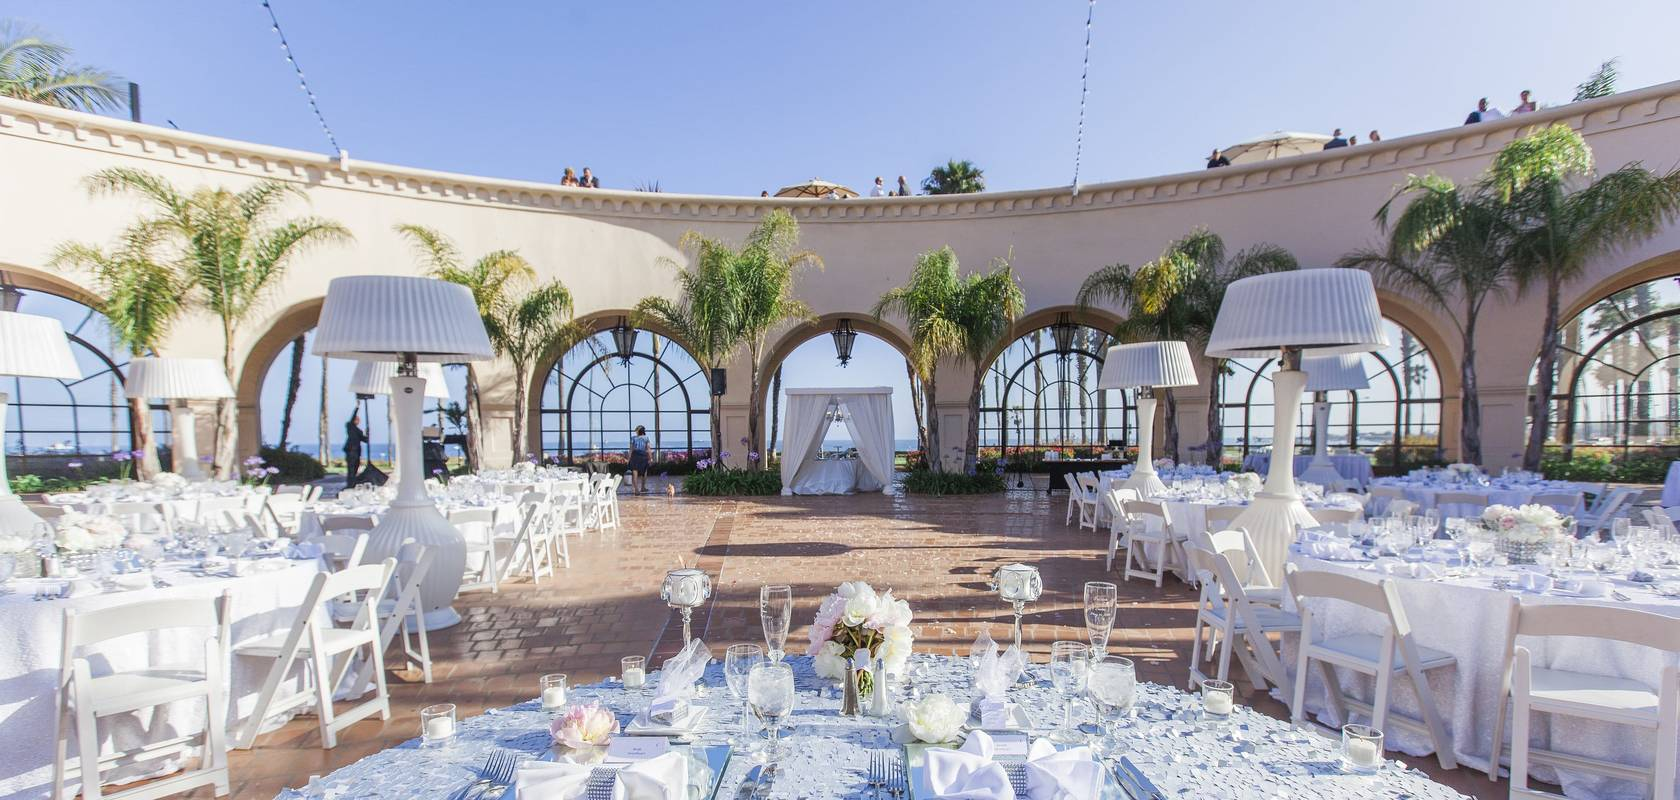 Elegant Venues Tailored To You